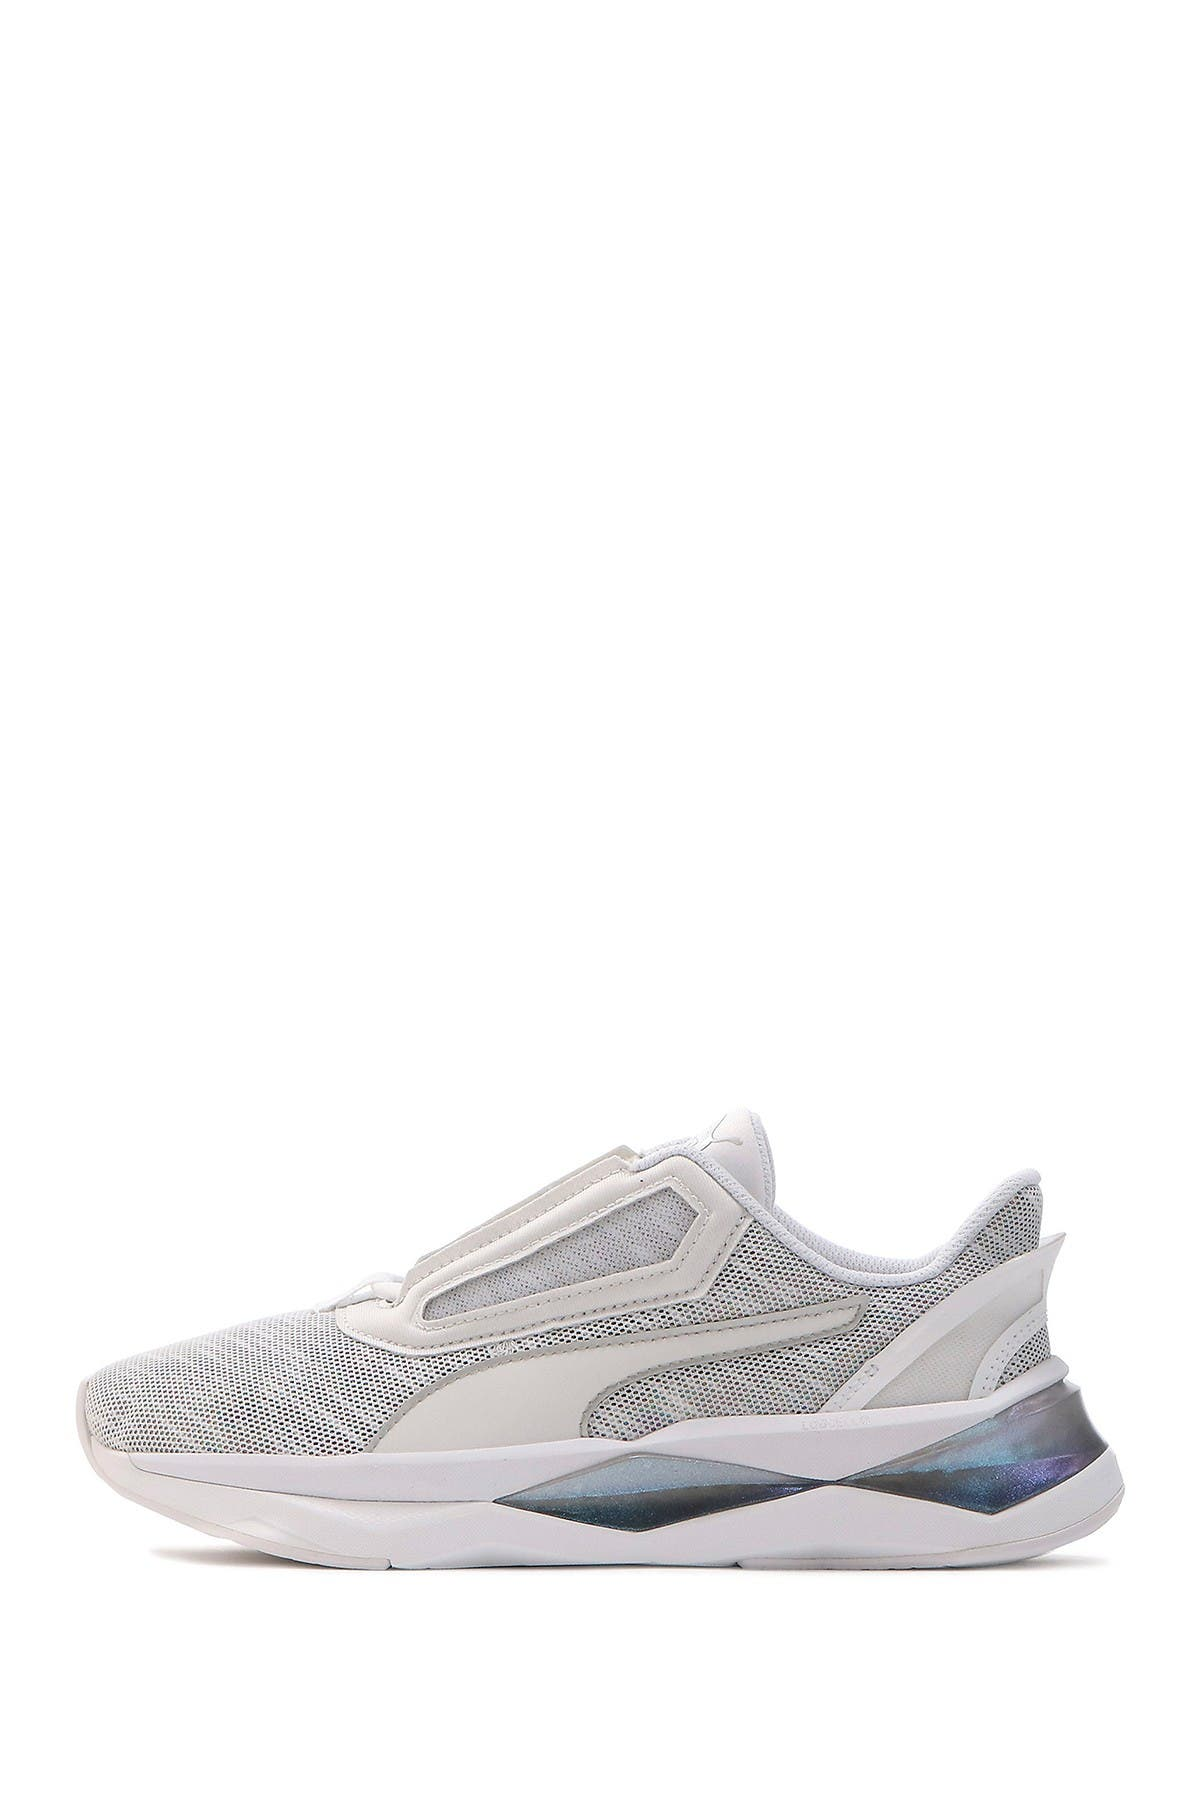 Image of PUMA LQDCELL Shatter XT Luster Sneaker